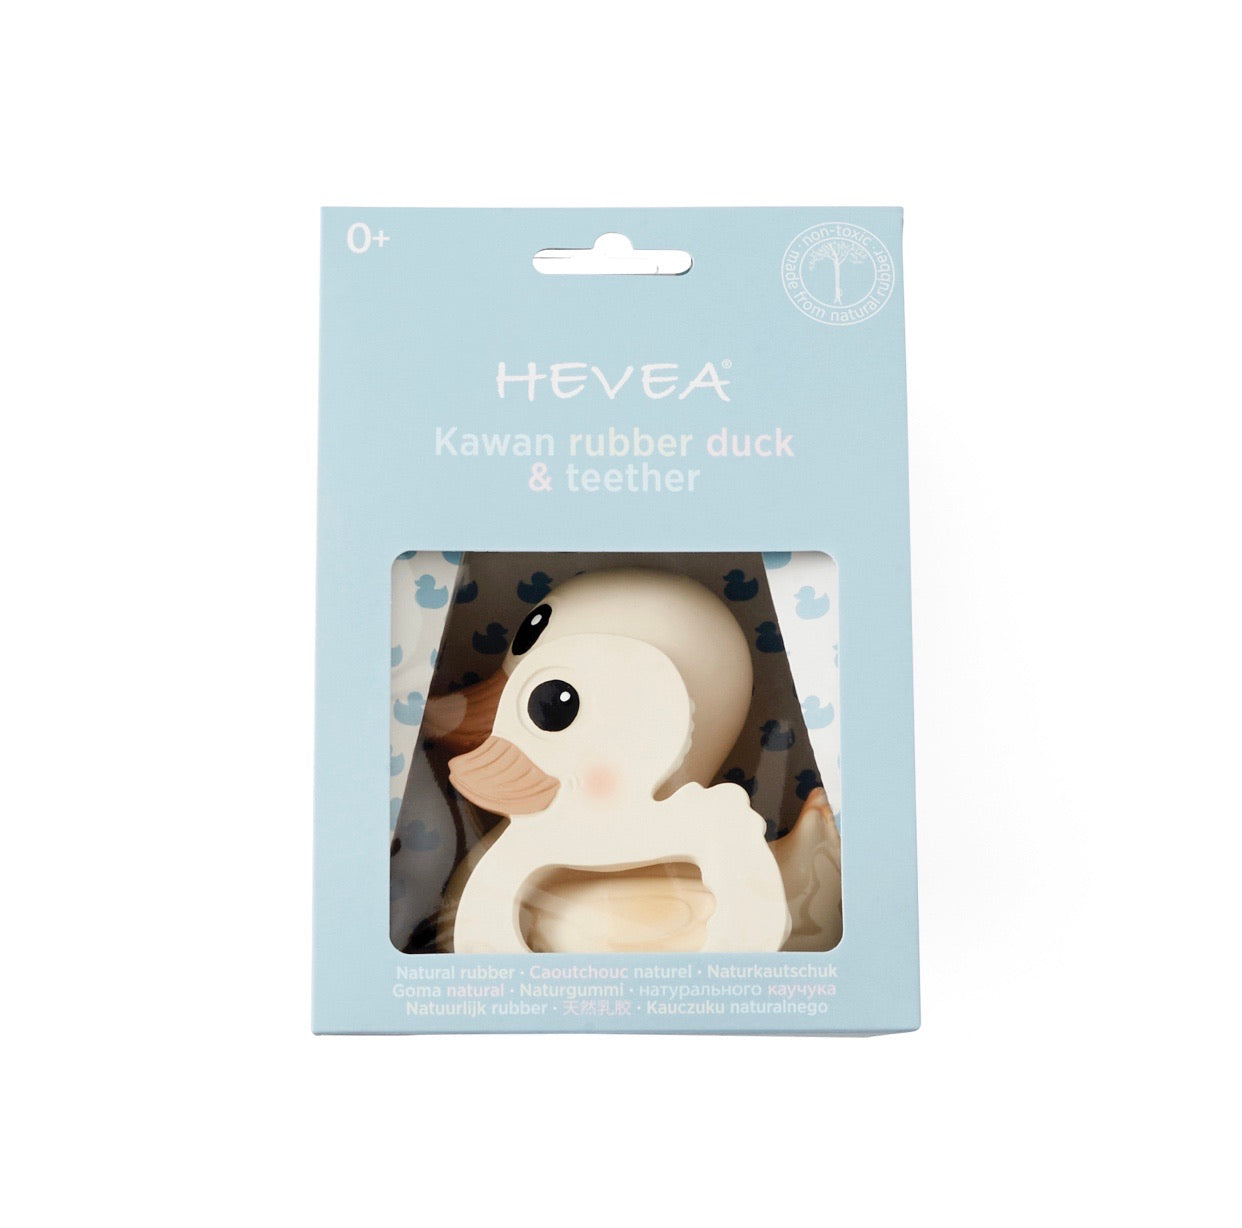 Kawan Rubberduck & Teether giftset